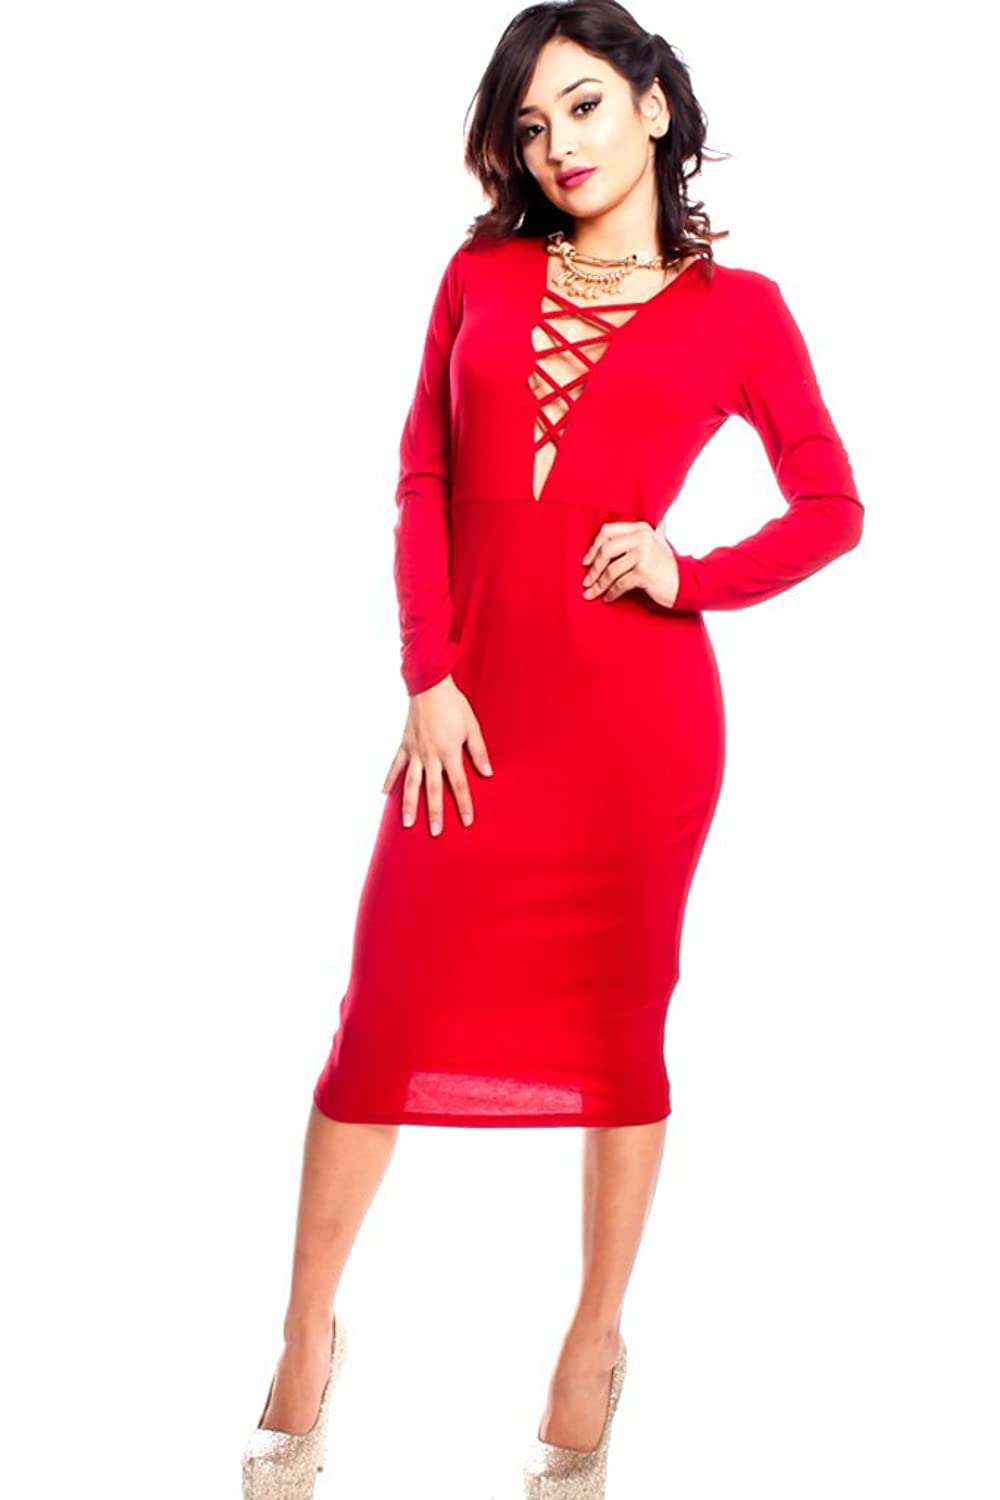 LOLLI COUTURE STRAPS LONG SLEEVE PLUNGE NECKLINE TIGHT FIT DRESS